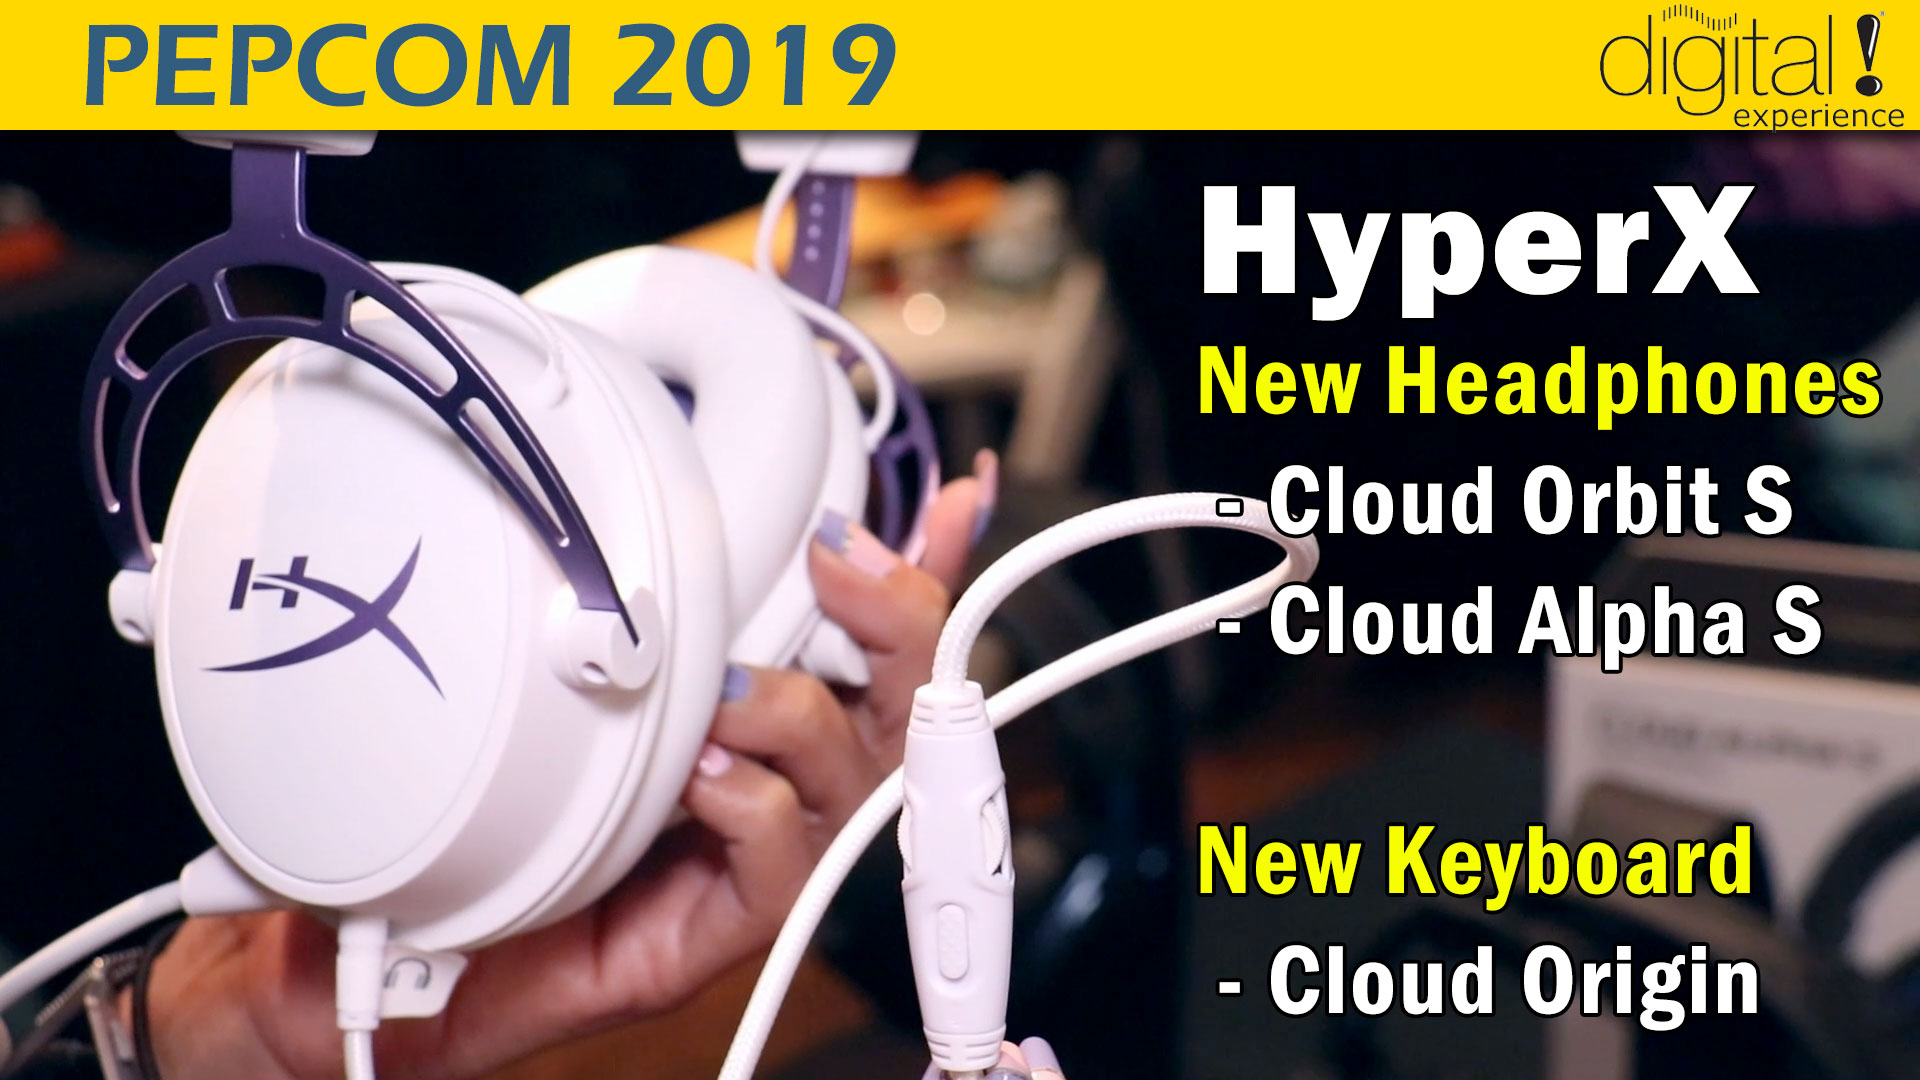 HyperX Cloud Orbit S & Cloud Origin